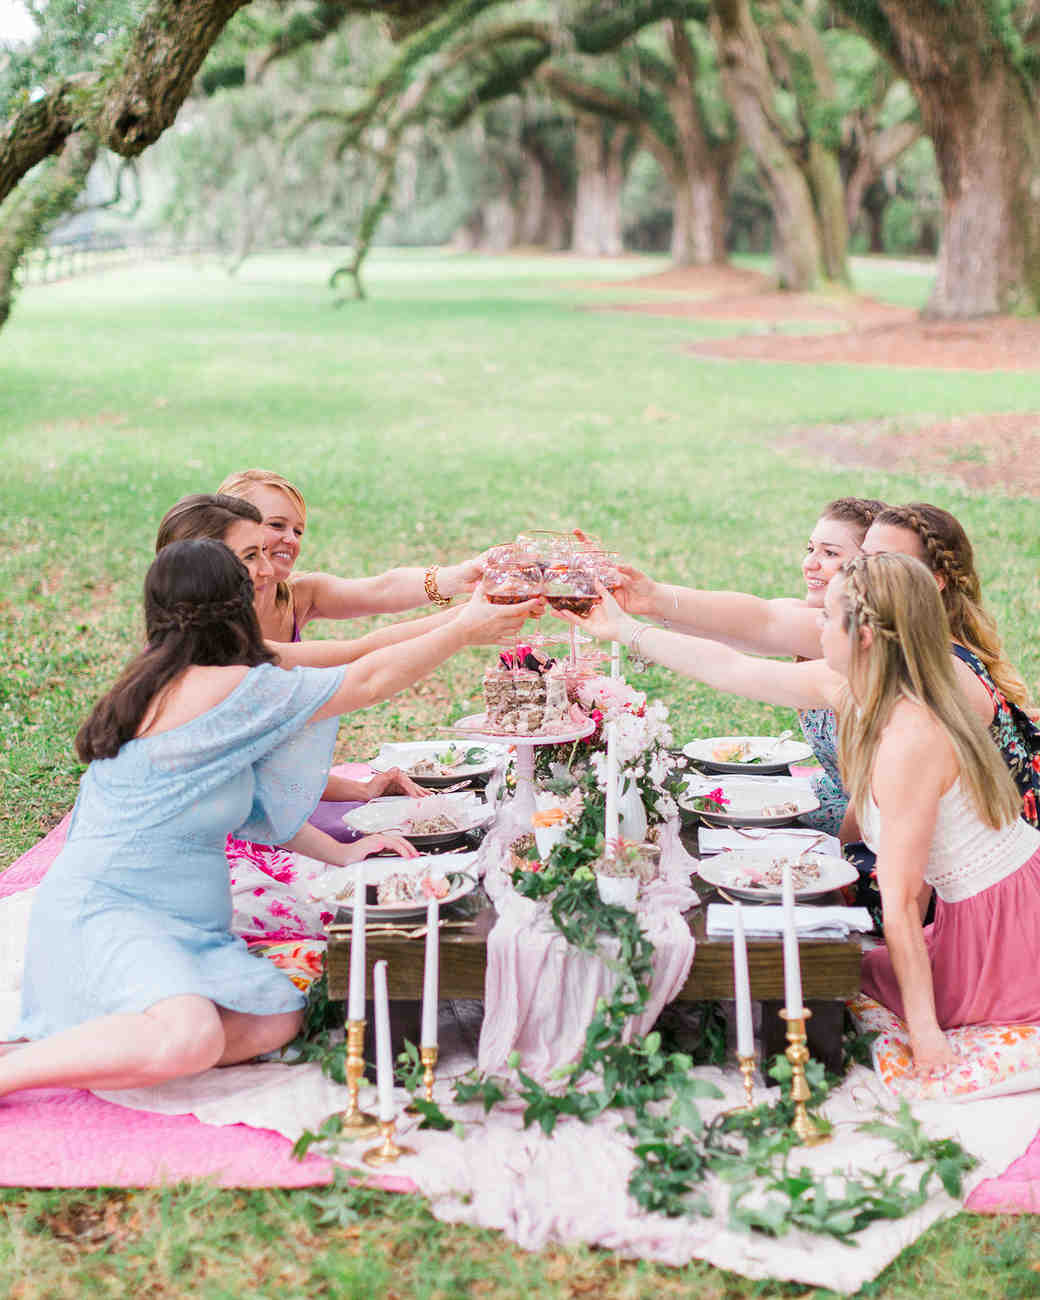 Garden Bachelorette Party